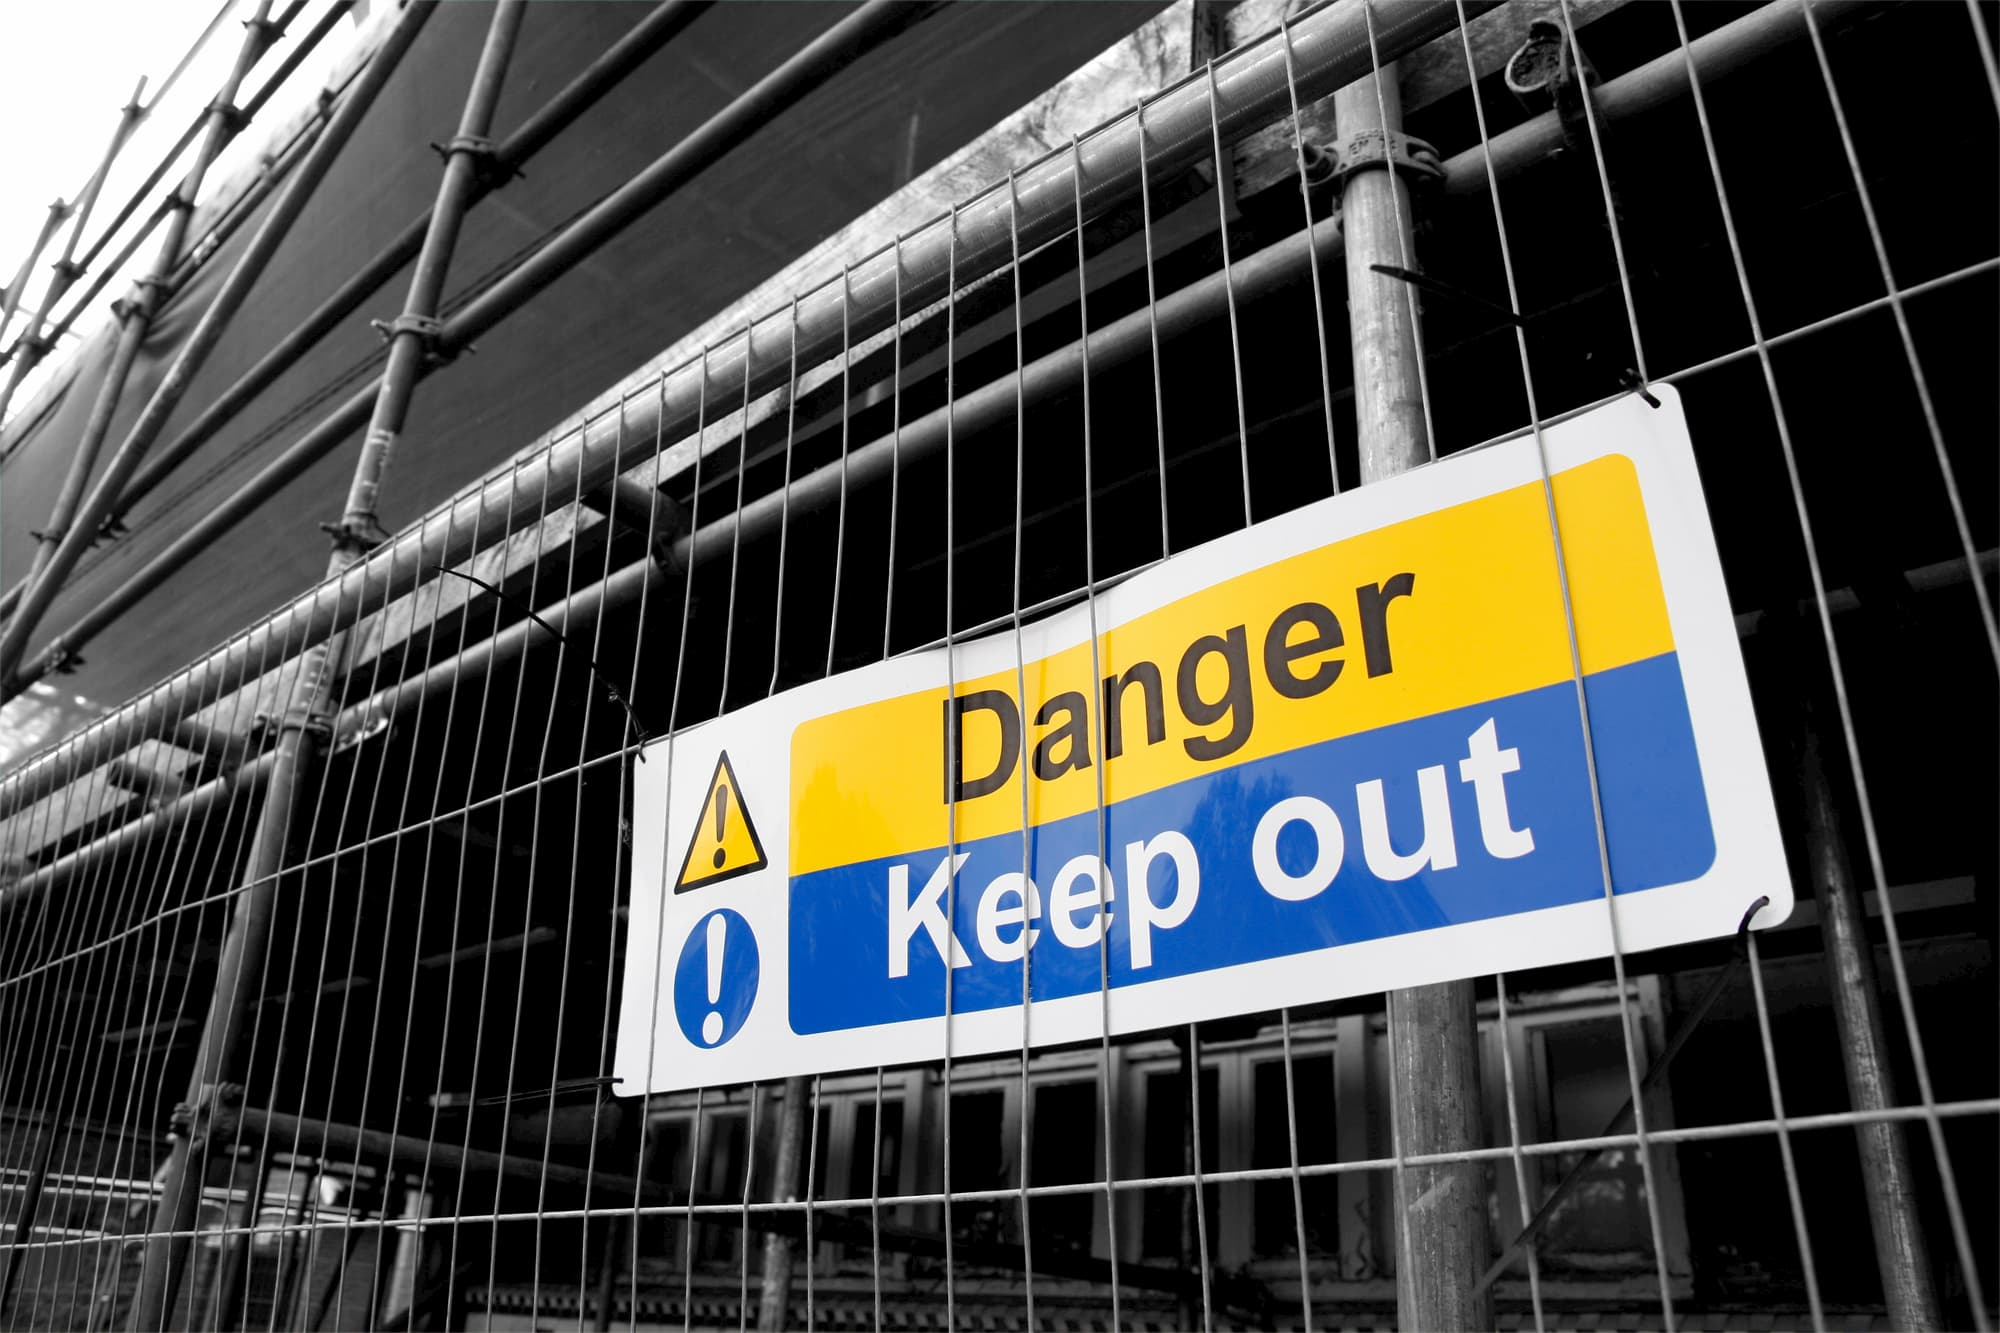 Danger - Keep Out